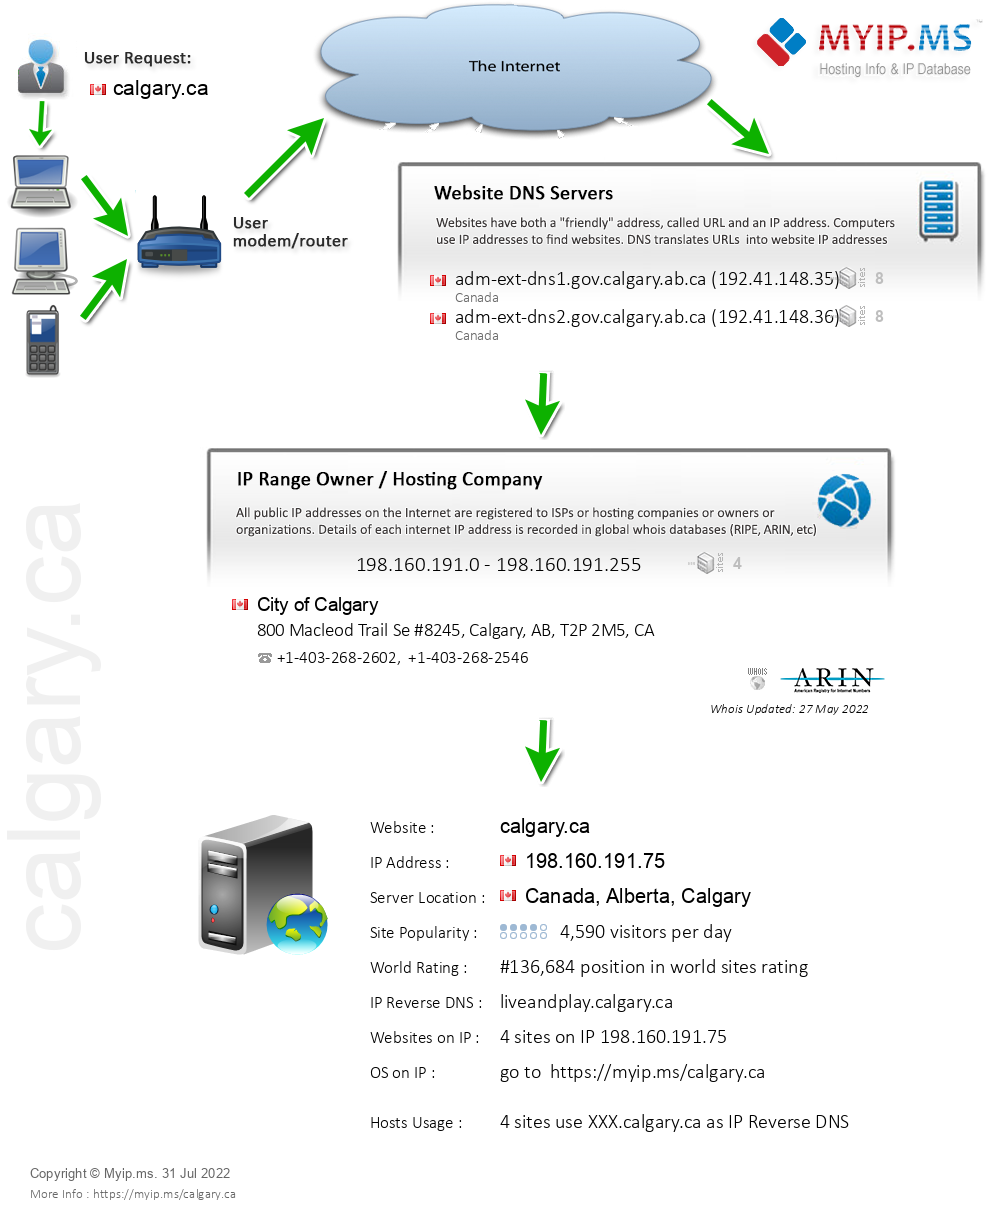 Calgary.ca - Website Hosting Visual IP Diagram